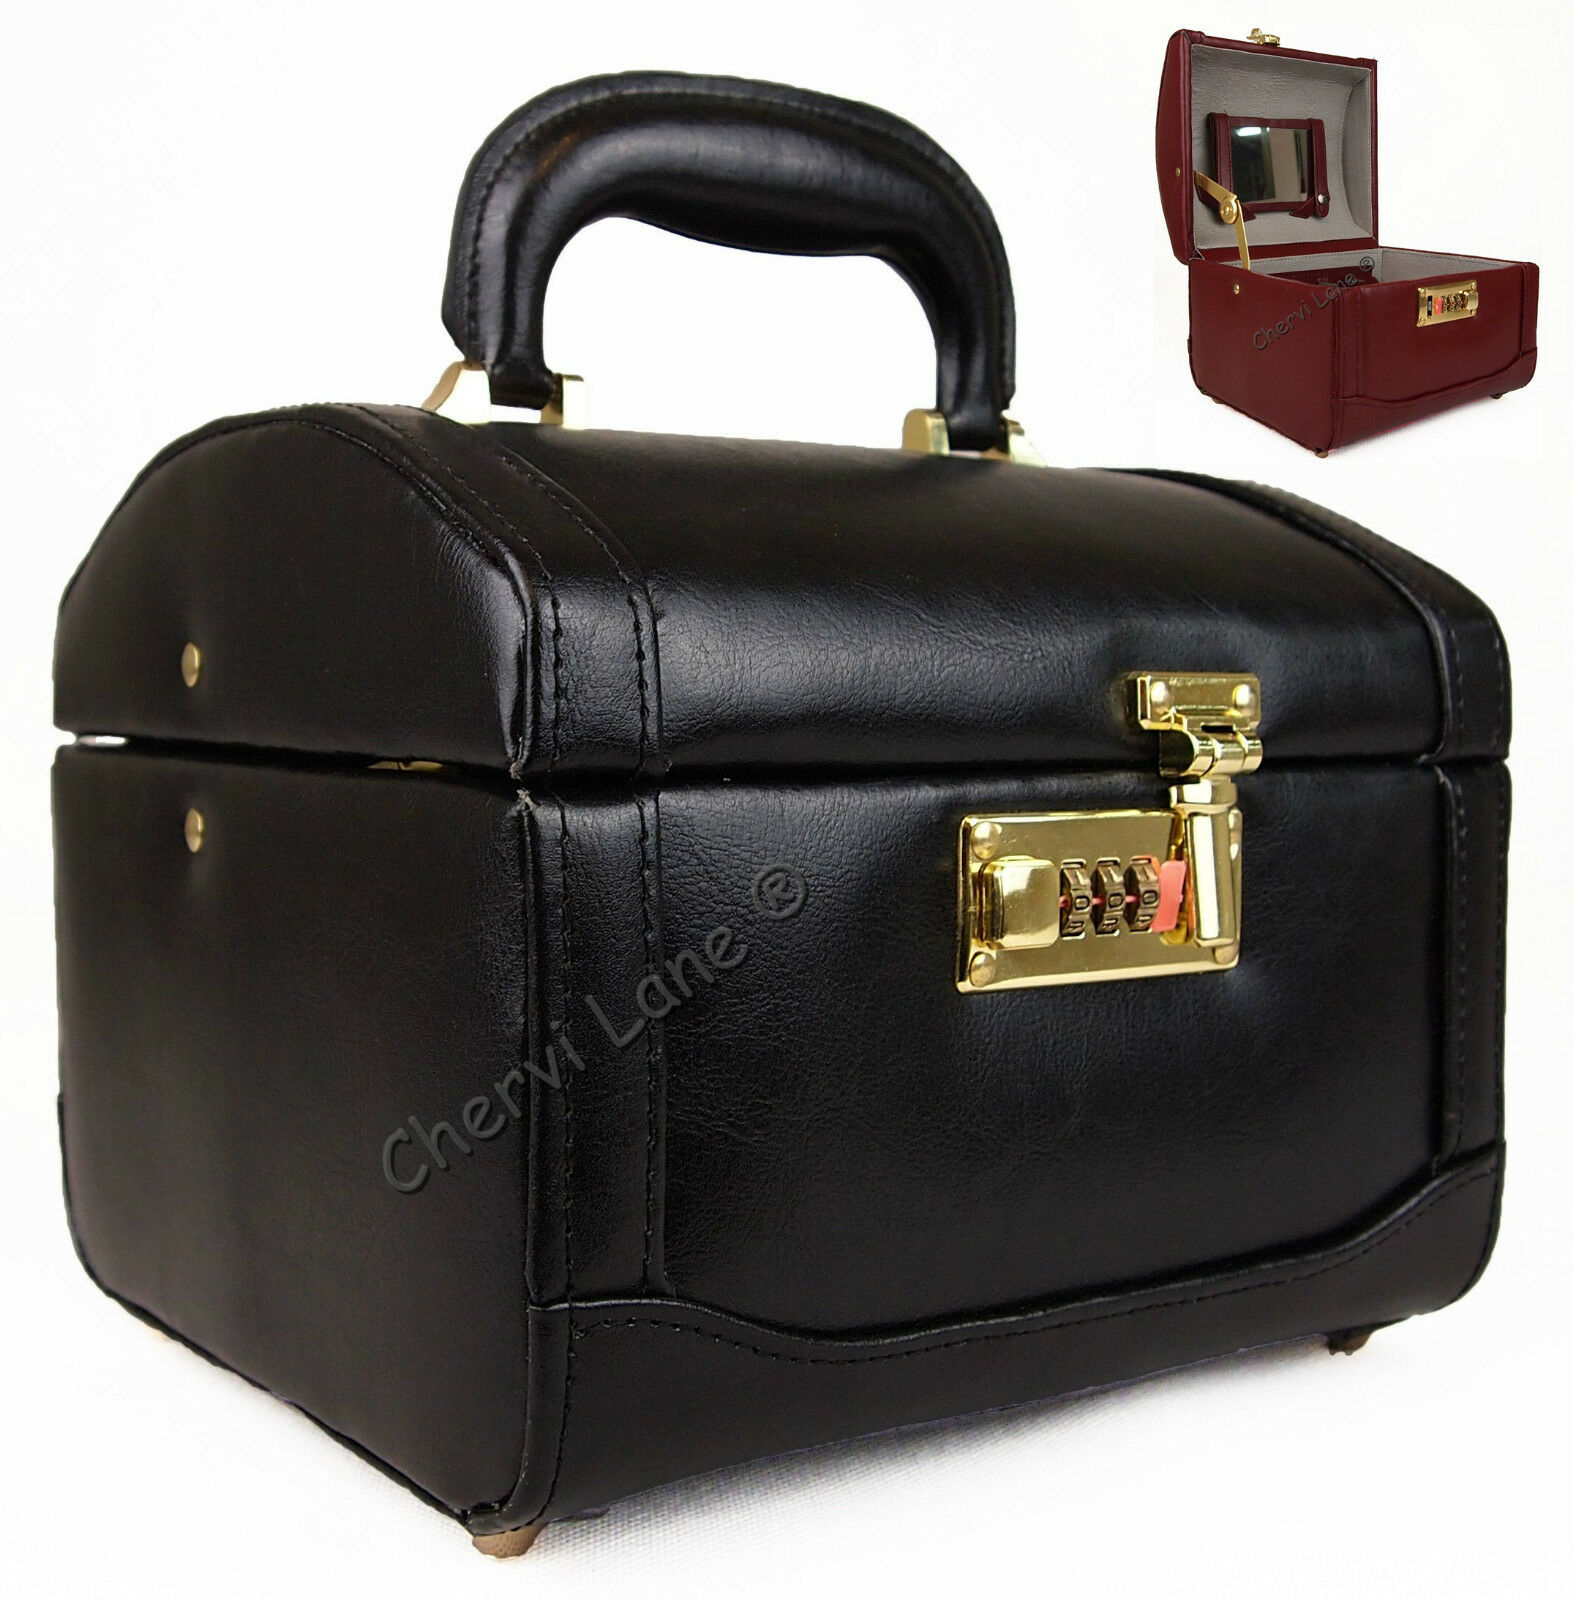 Find great deals on eBay for leather make up case. Shop with confidence.